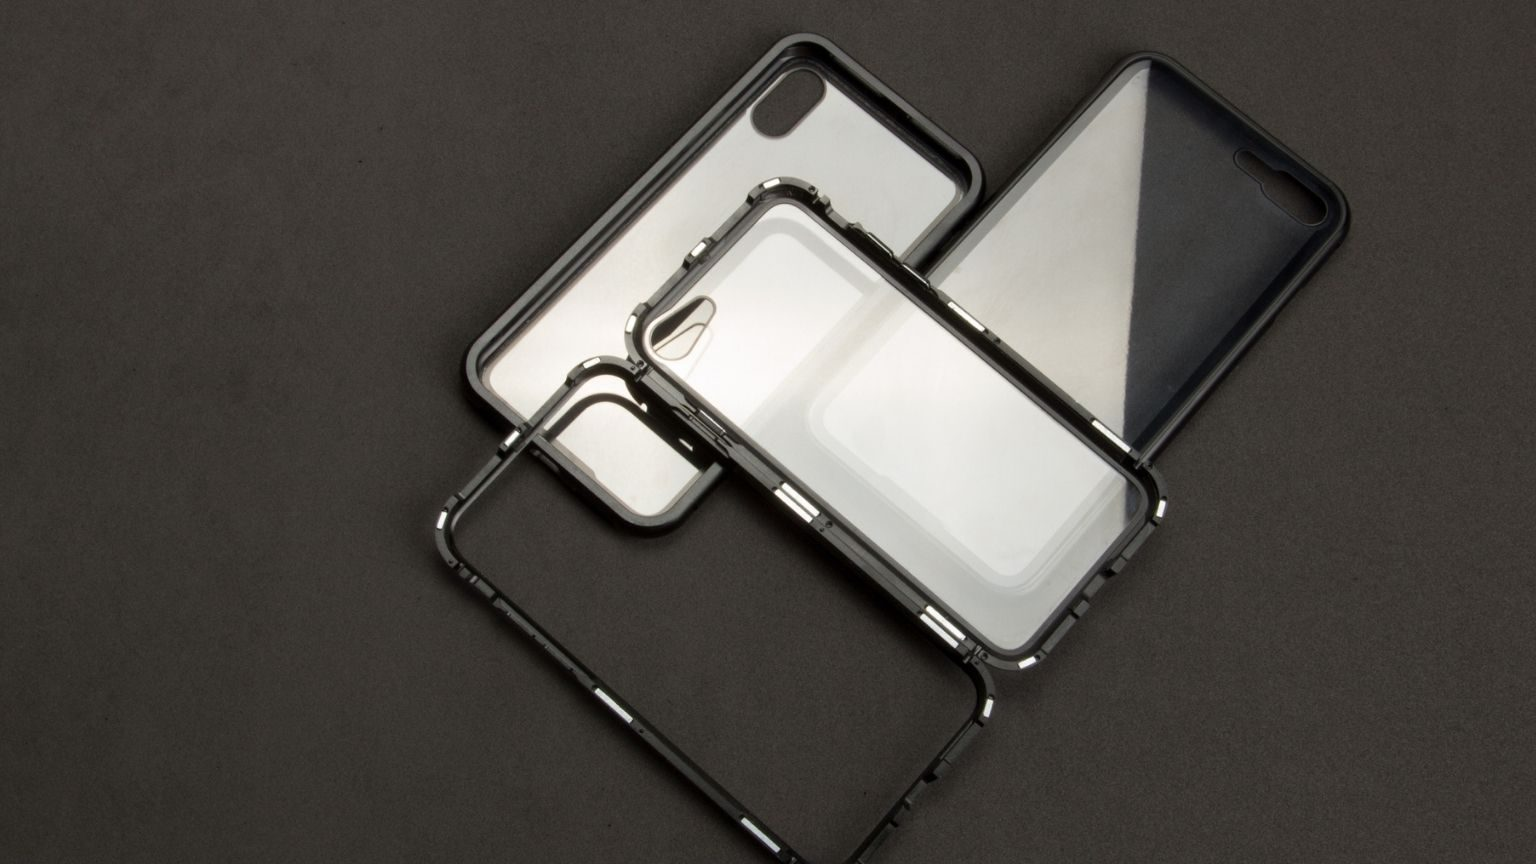 High Angle View Of Phone Cover On Table